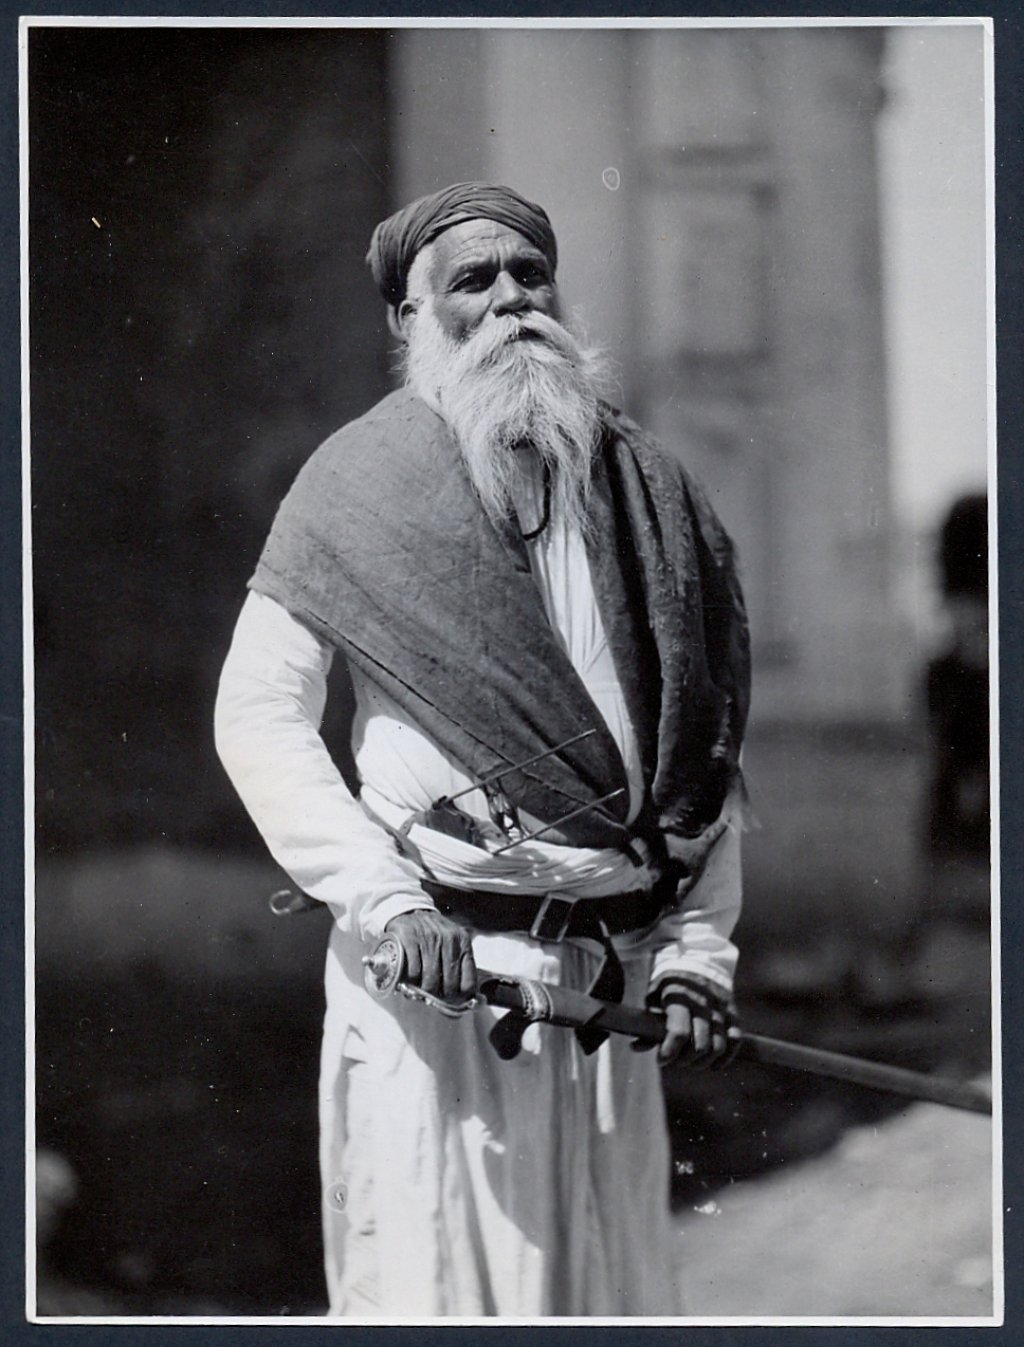 west rutland hindu single men Newspapers are added every month newspaperscom the largest online newspaper archive the west schuylkill press and pine grove herald (tremont, pennsylvania.